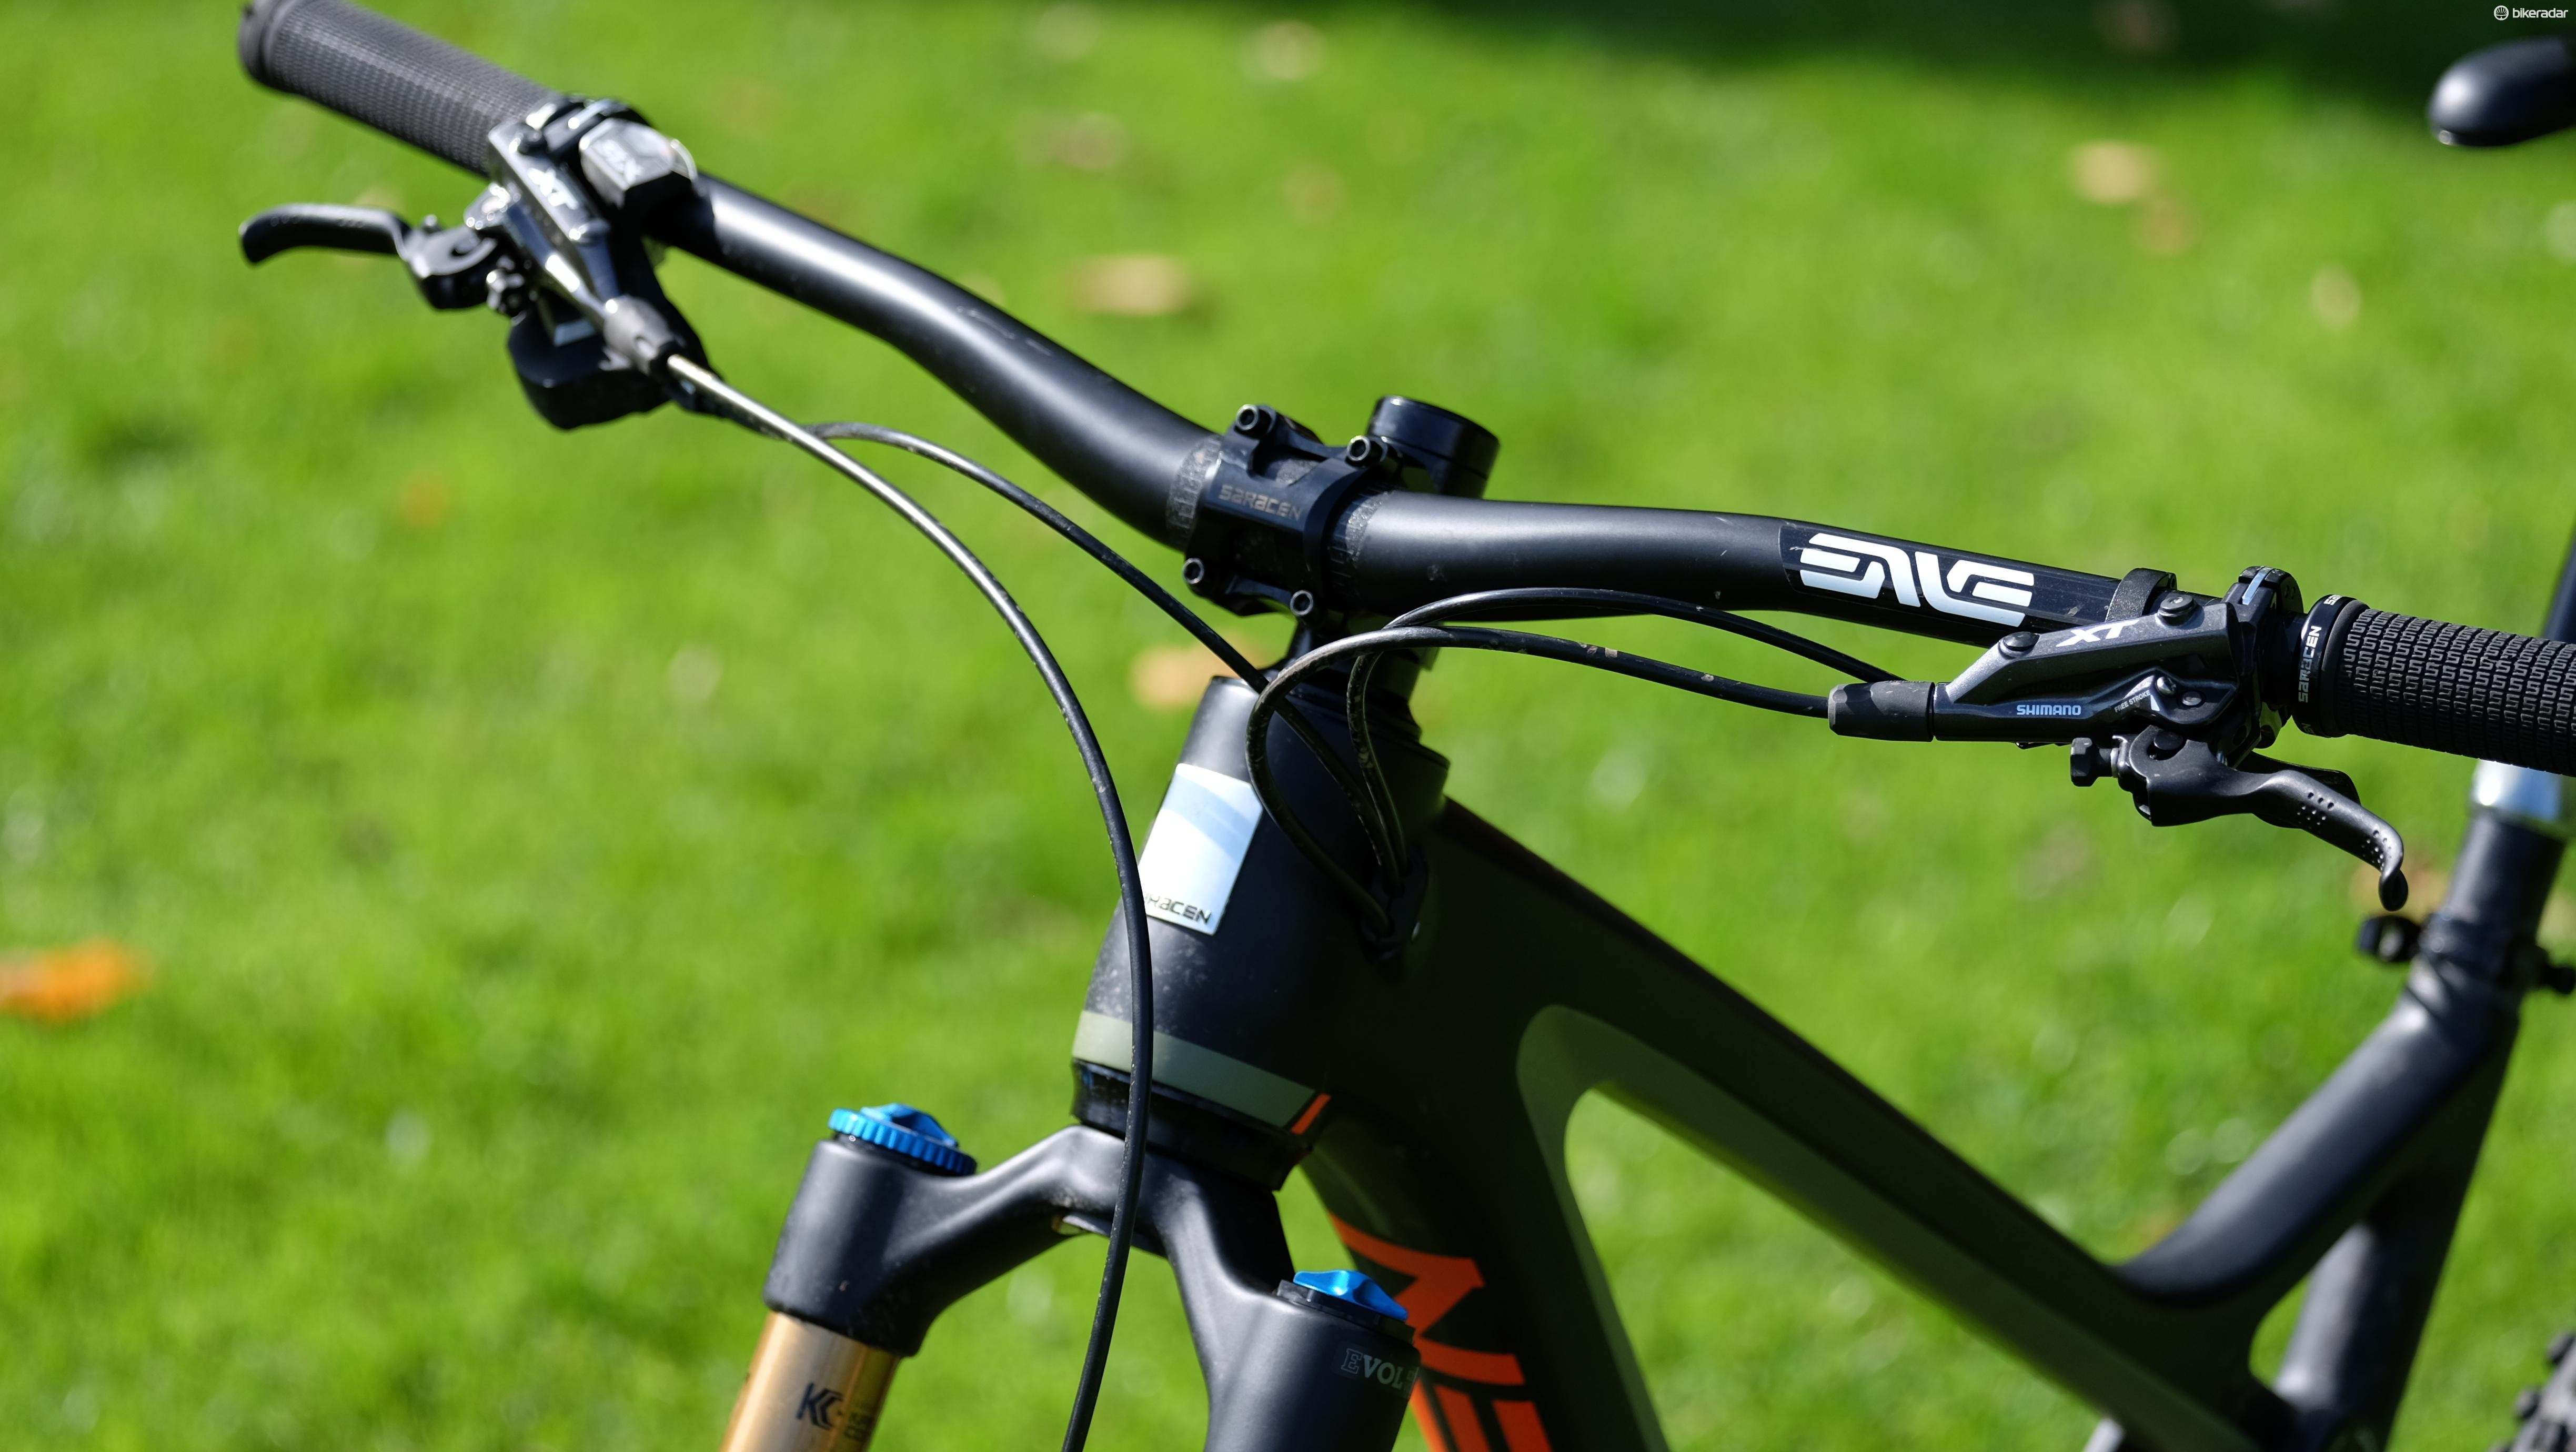 An Enve DH carbon bar and a 45mm Saracen stem give a solid, well-proportioned cockpit